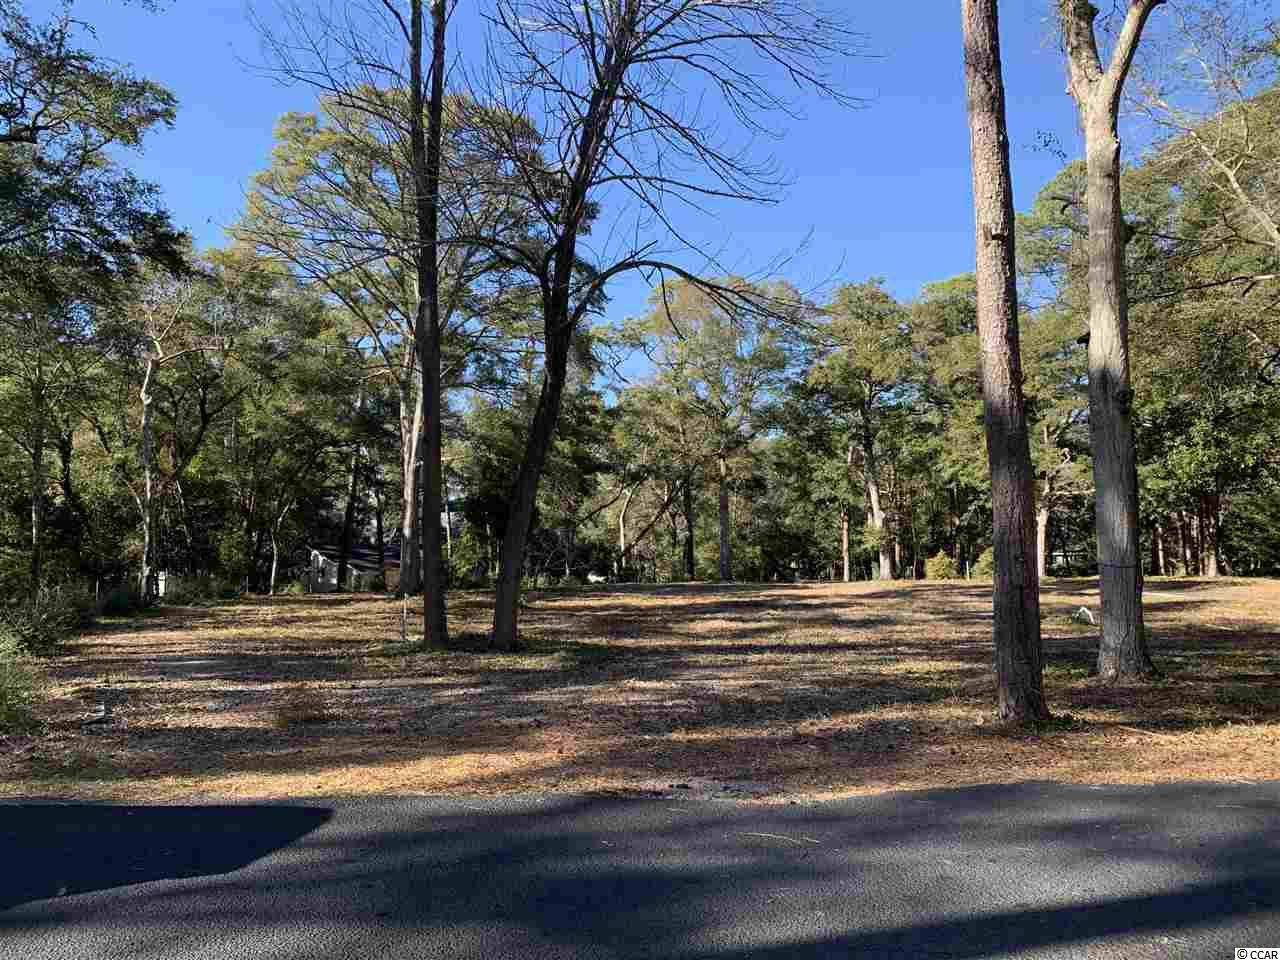 Build your dream house on the 1.18 acre lot in the magical Briarcliffe Acres.  Briarcliffe Acres is unlike any other neighborhood in the Myrtle Beach area.  Briarcliffe hosts lots of trees and spacious lots throughout and it's close to the beach.